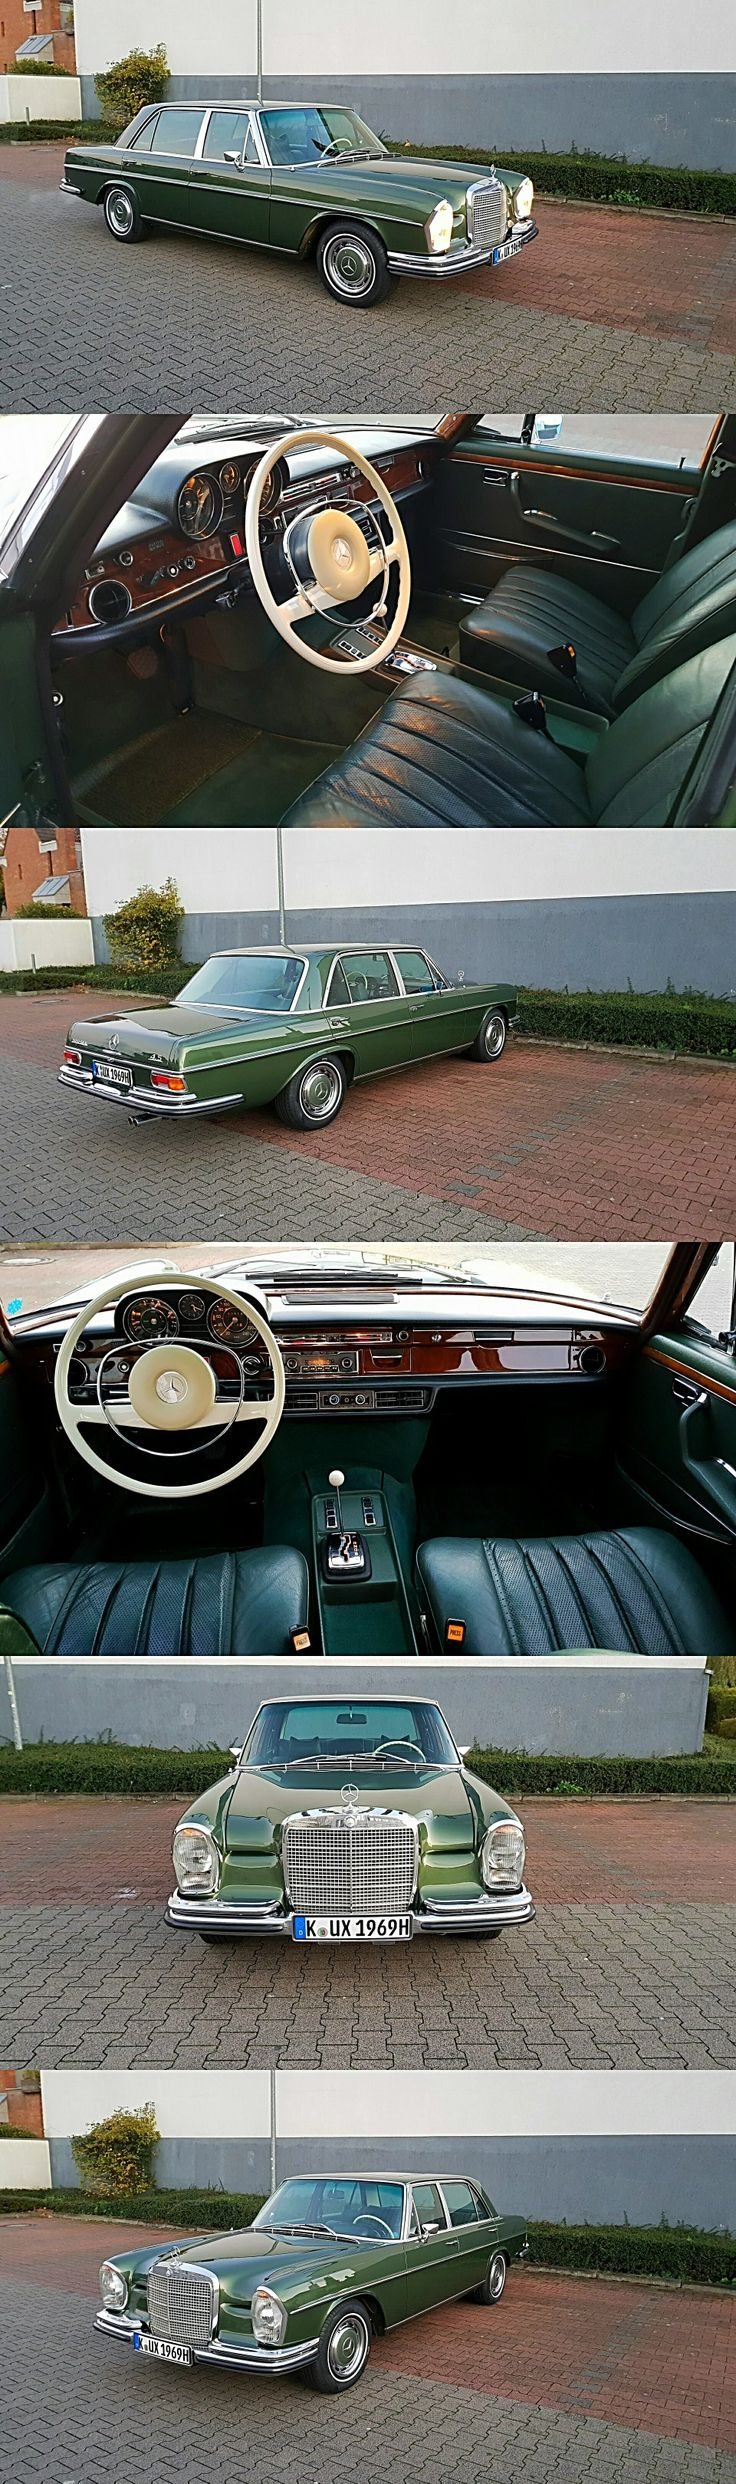 1970 Mercedes Benz 300 SEL 4.5 V8 Saloon